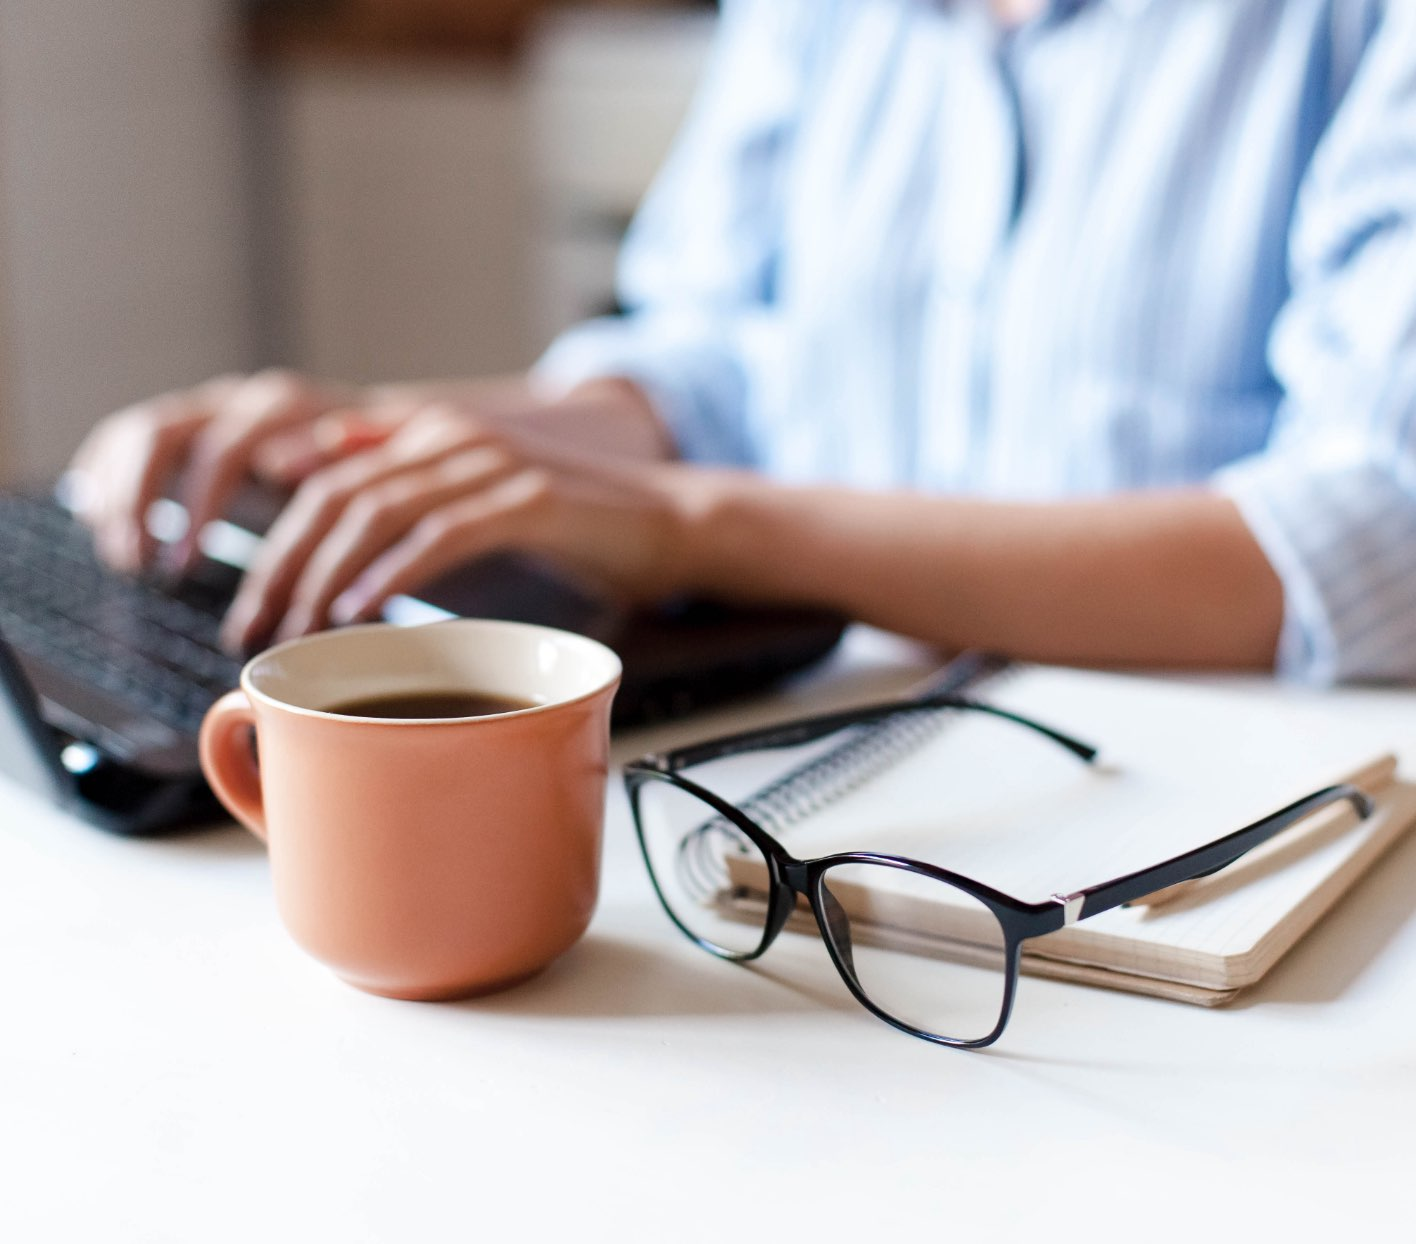 close-up view of person sitting at desk with computer, coffee and glasses